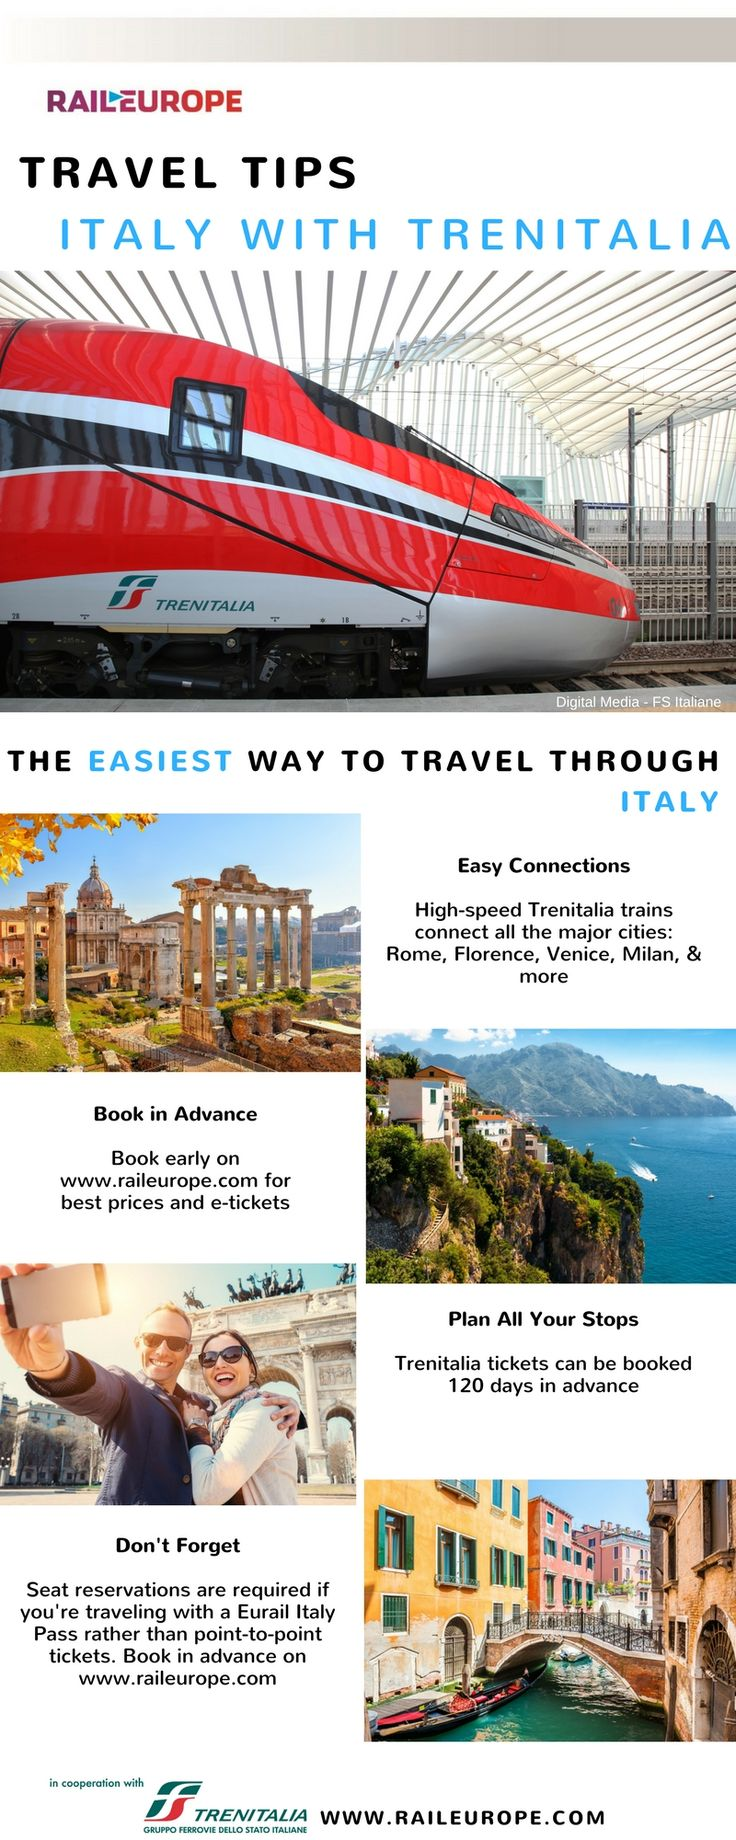 Trenitalia makes it easy and comfortable to travel through #Italy !